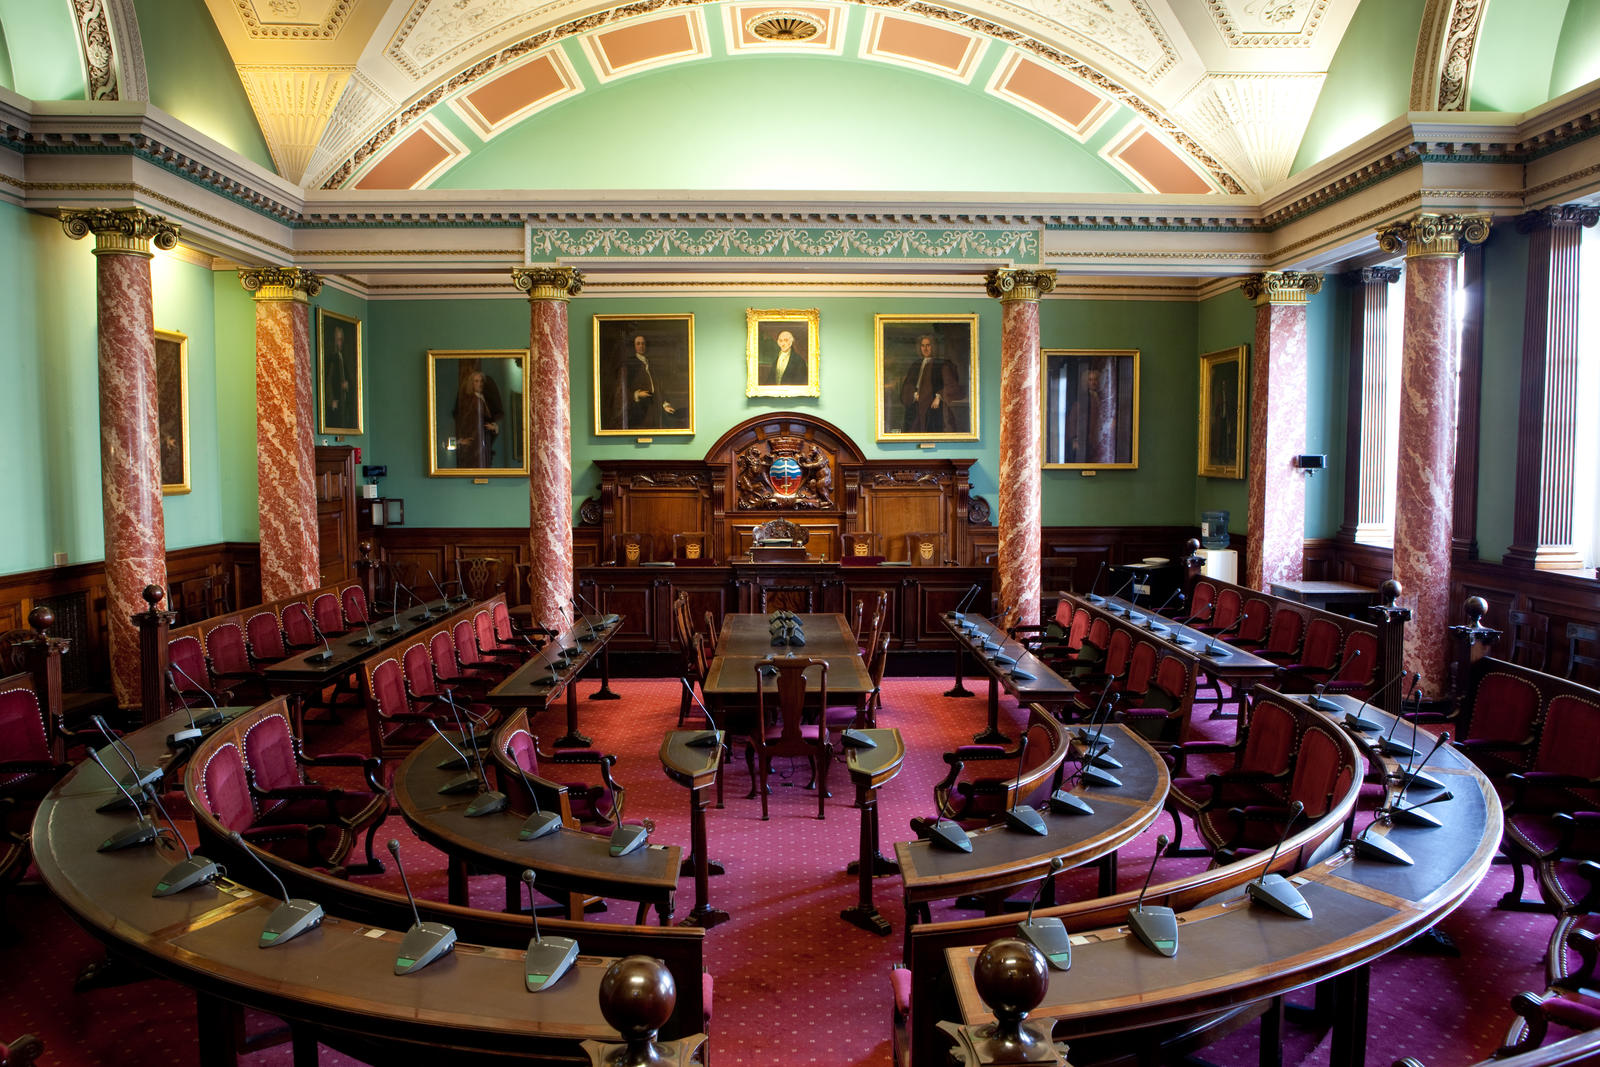 Image: The Council Chamber